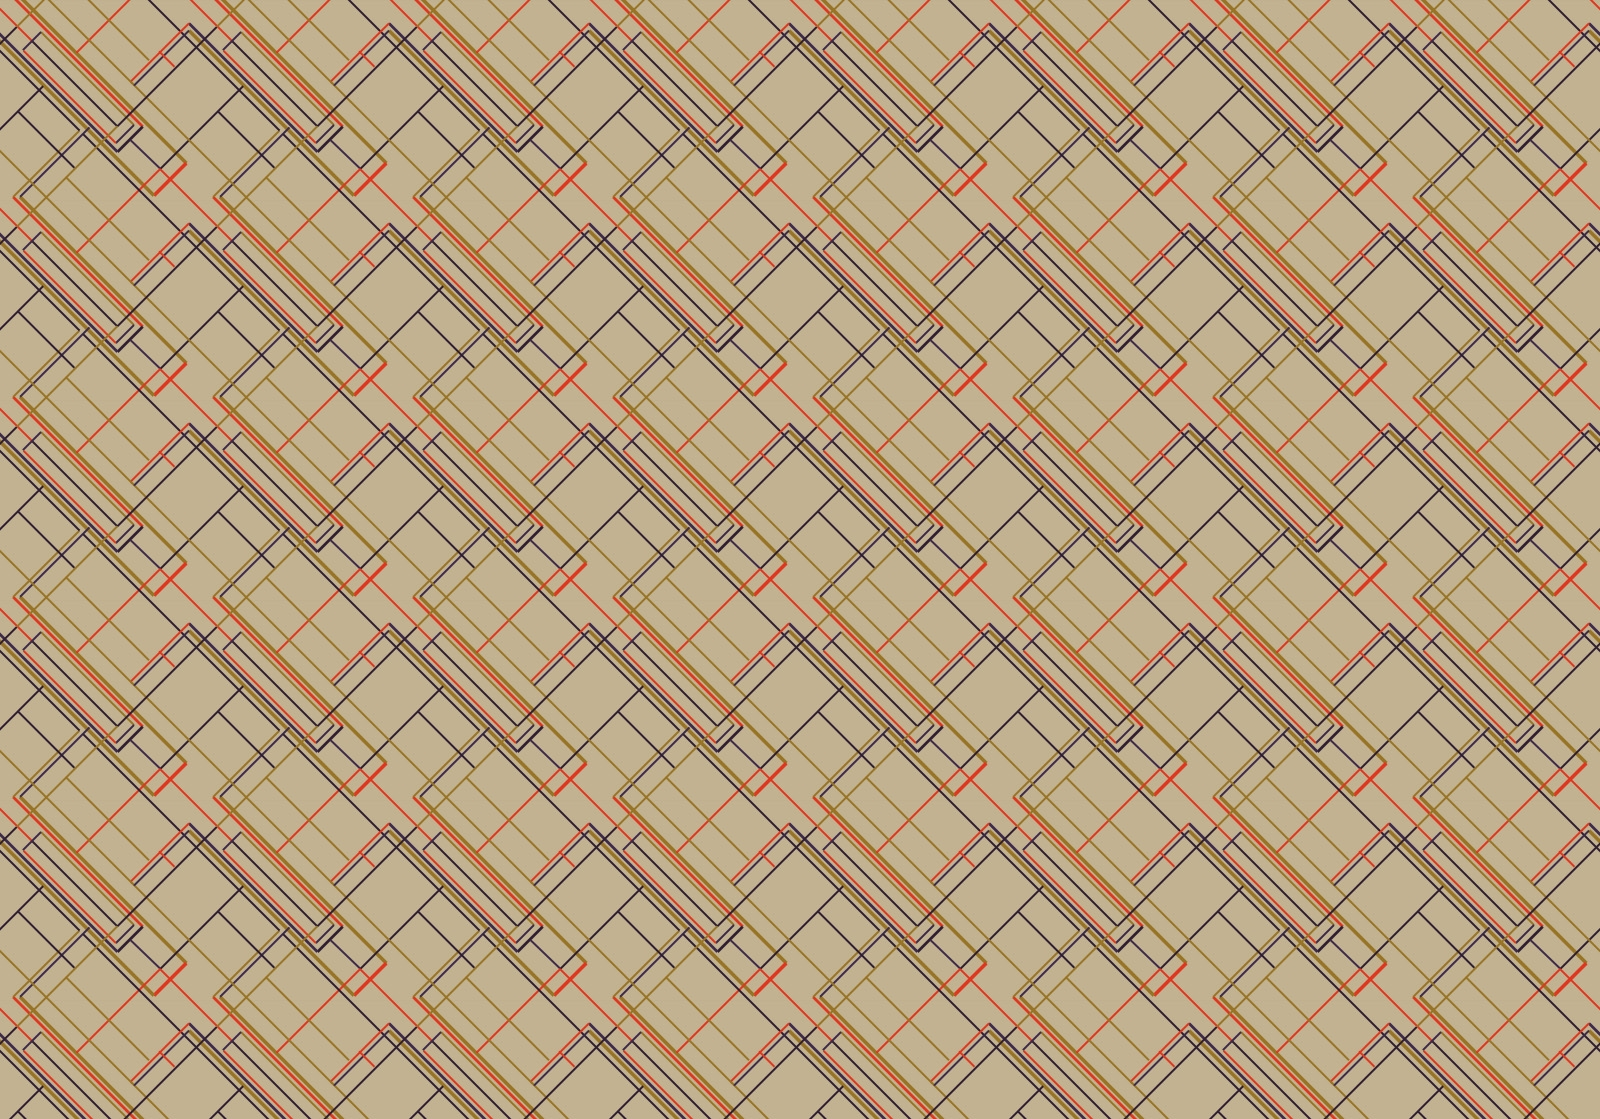 Wallpaper Tembok Hd Wallpaper Wall Pattern Texture Circle Lines Tile Mosaic